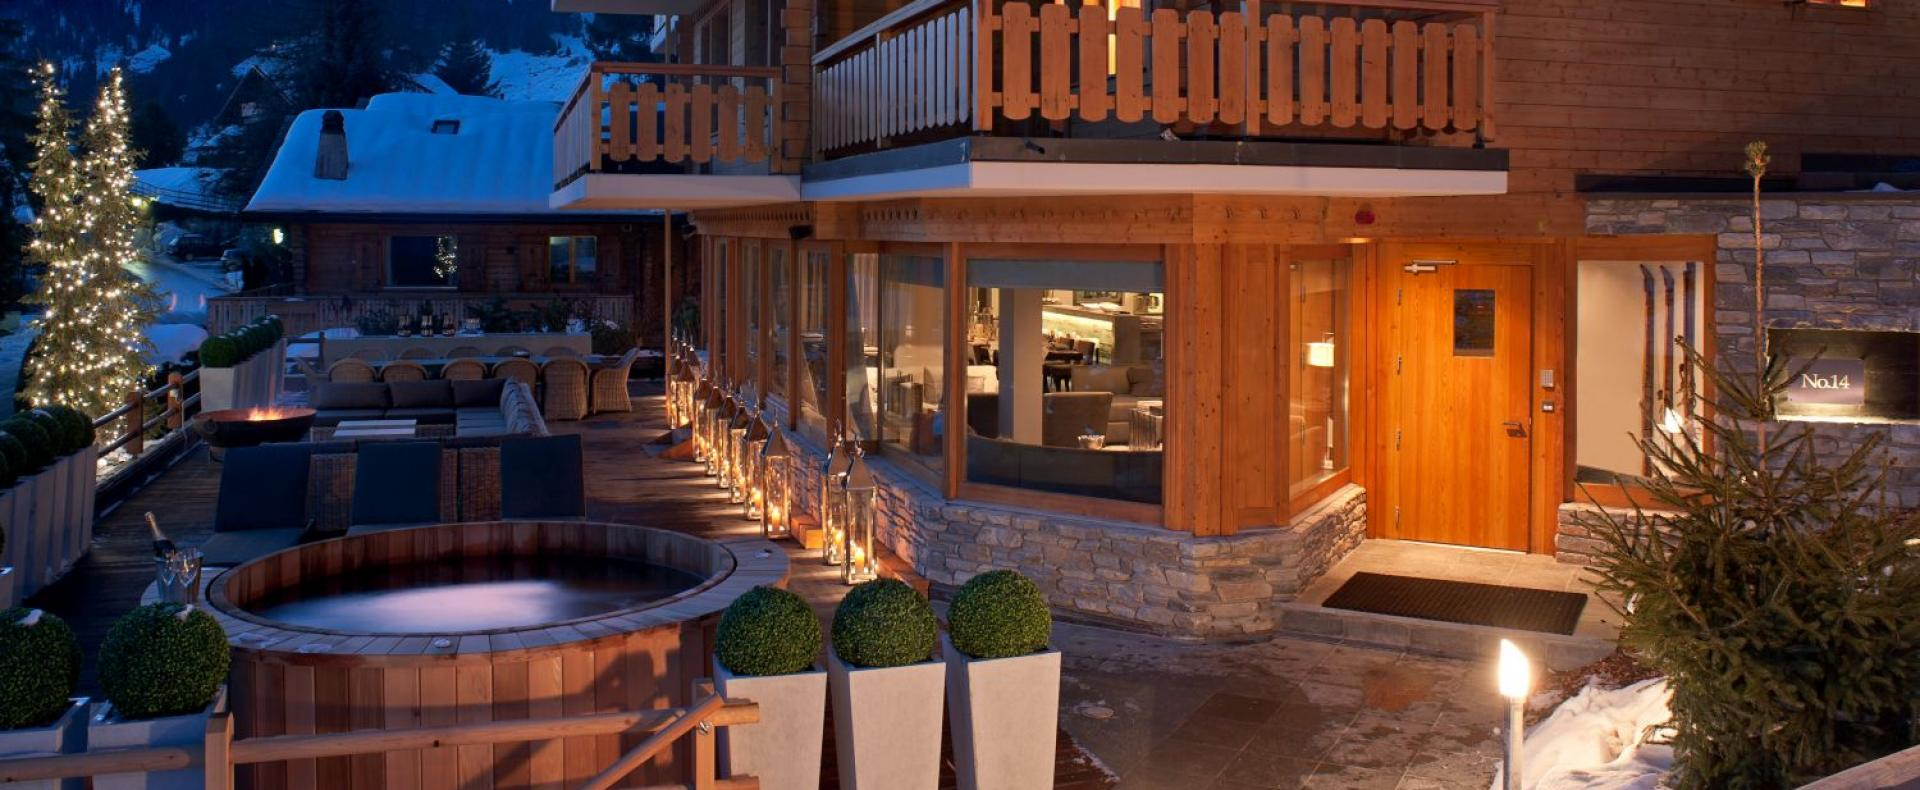 Exterior-No-14-Verbier-Ultimate-Luxury-Chalets-UltraVilla